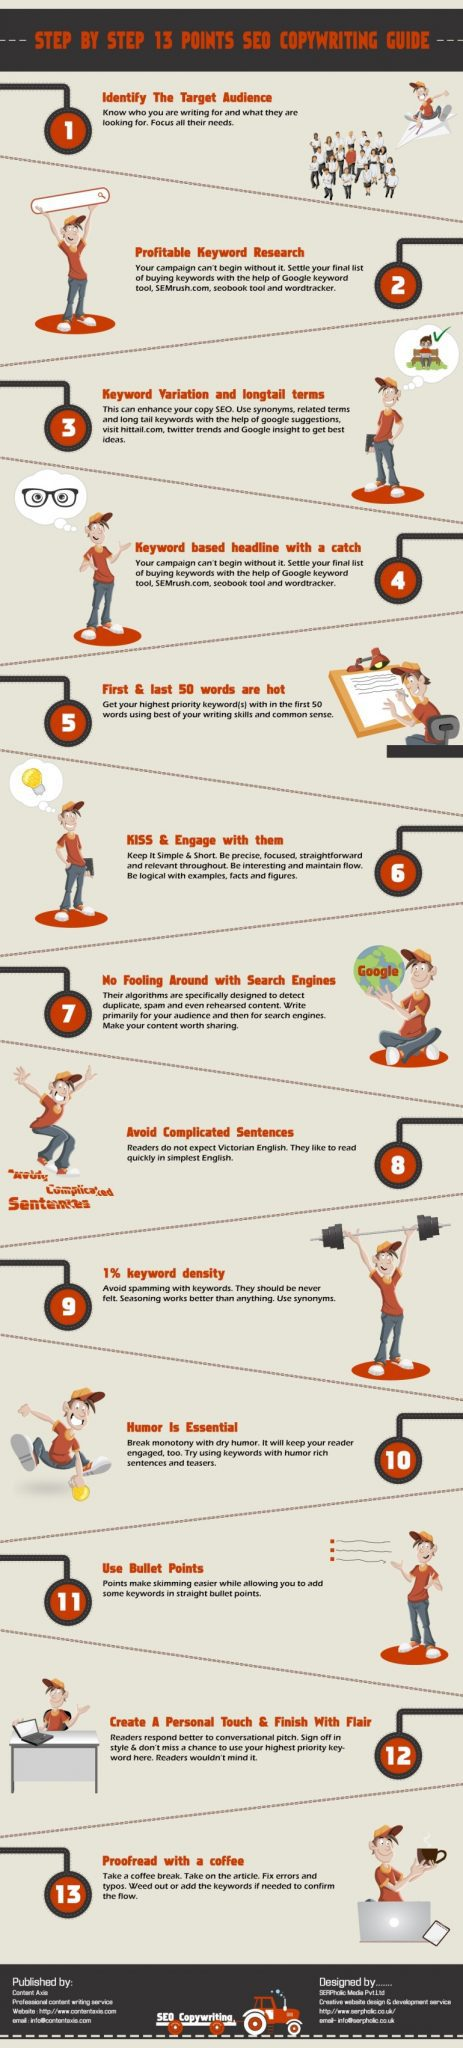 Infographic-Step-by-Step-13-Points-SEO-Copywriting-Guide